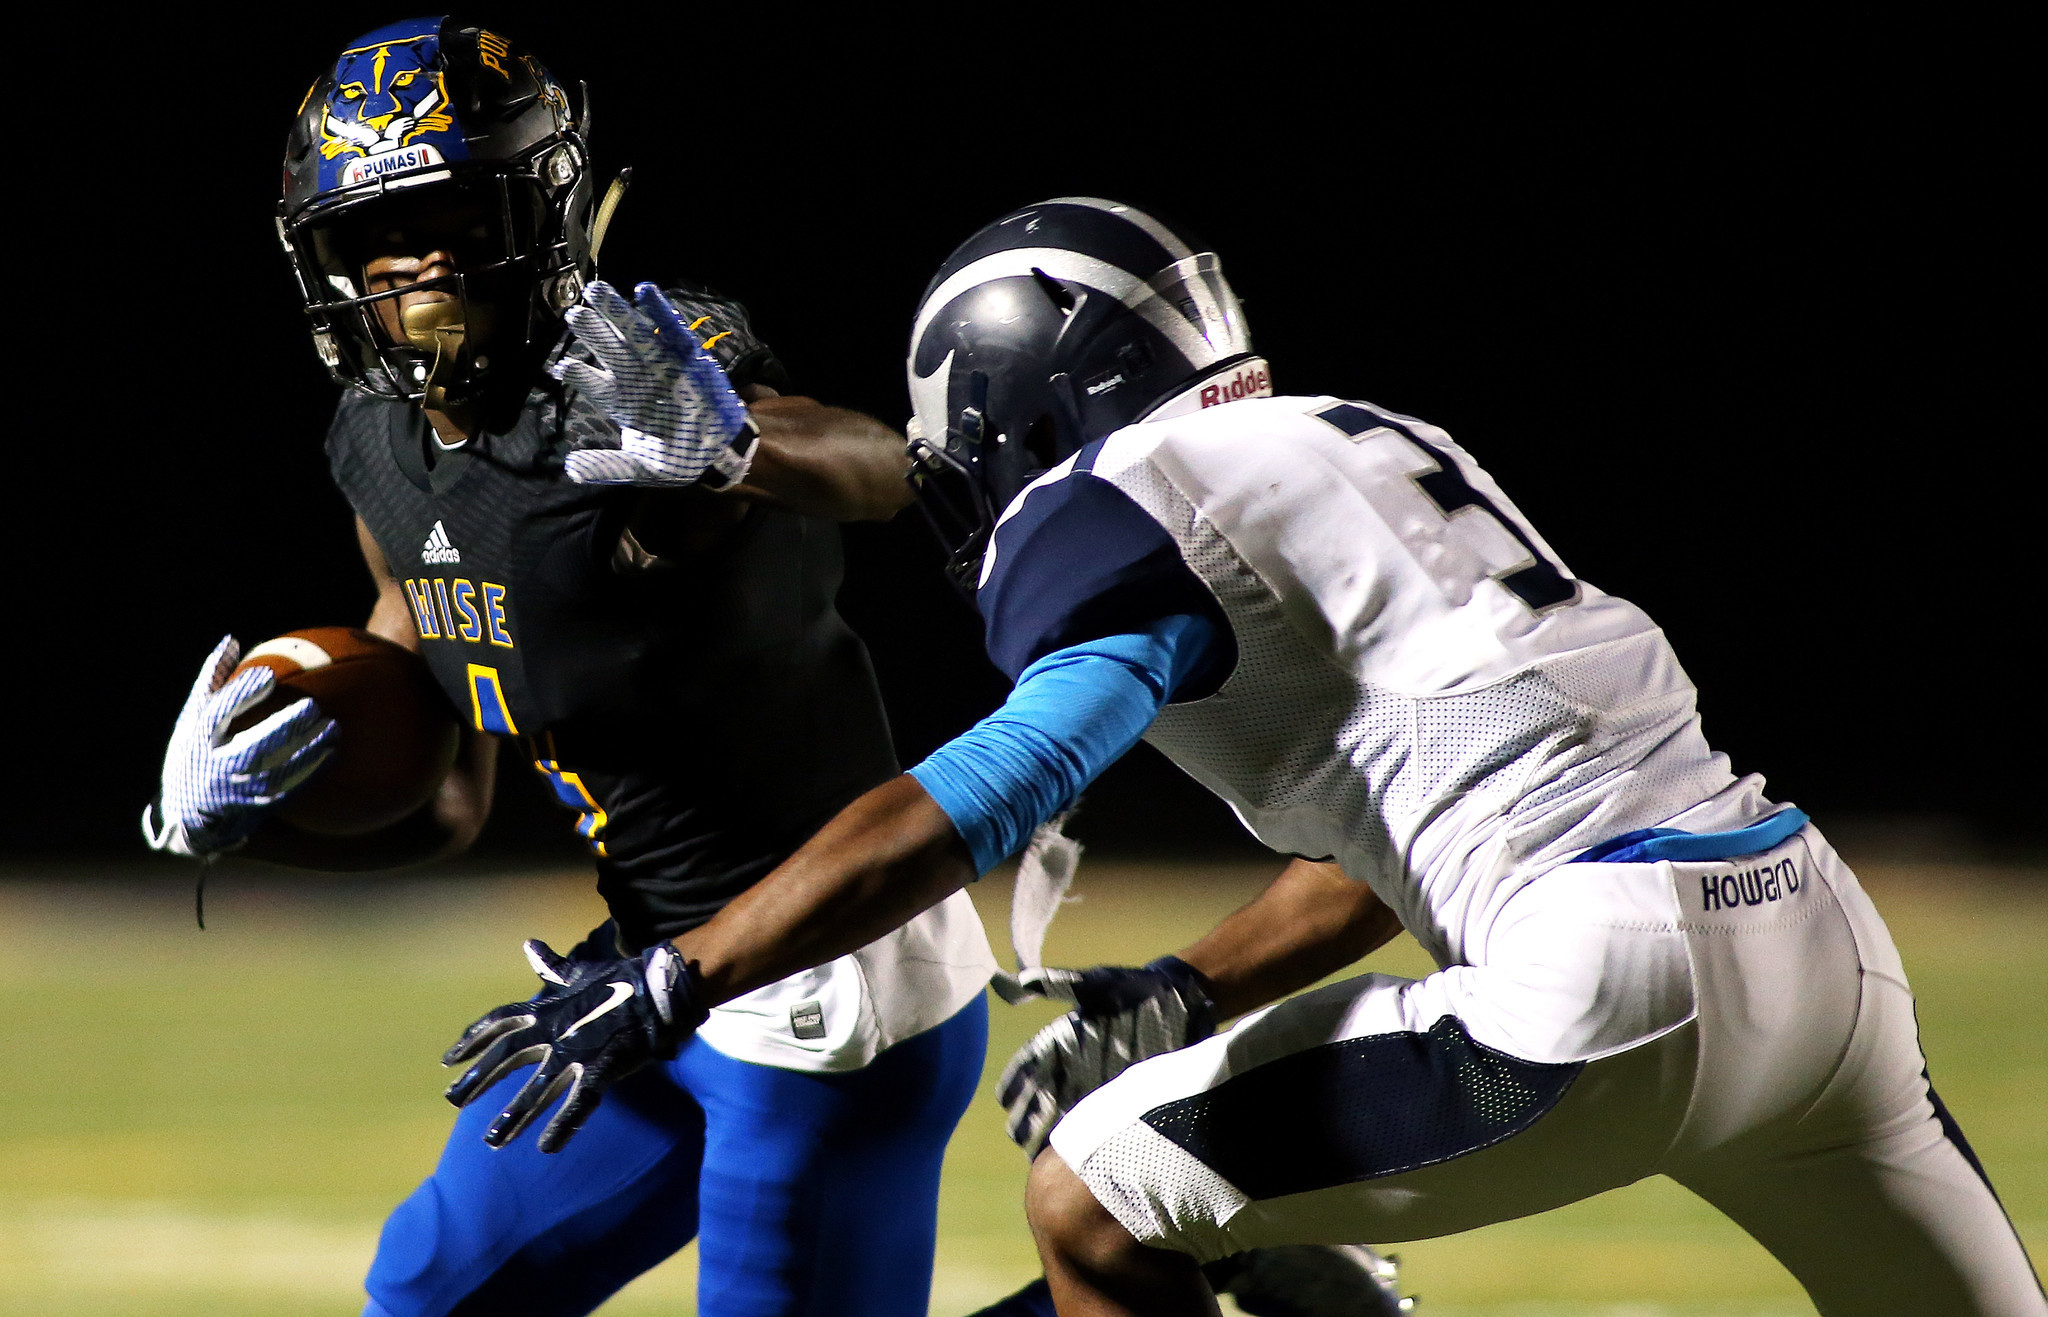 Howard football falls to Wise in 4A state semifinal ...